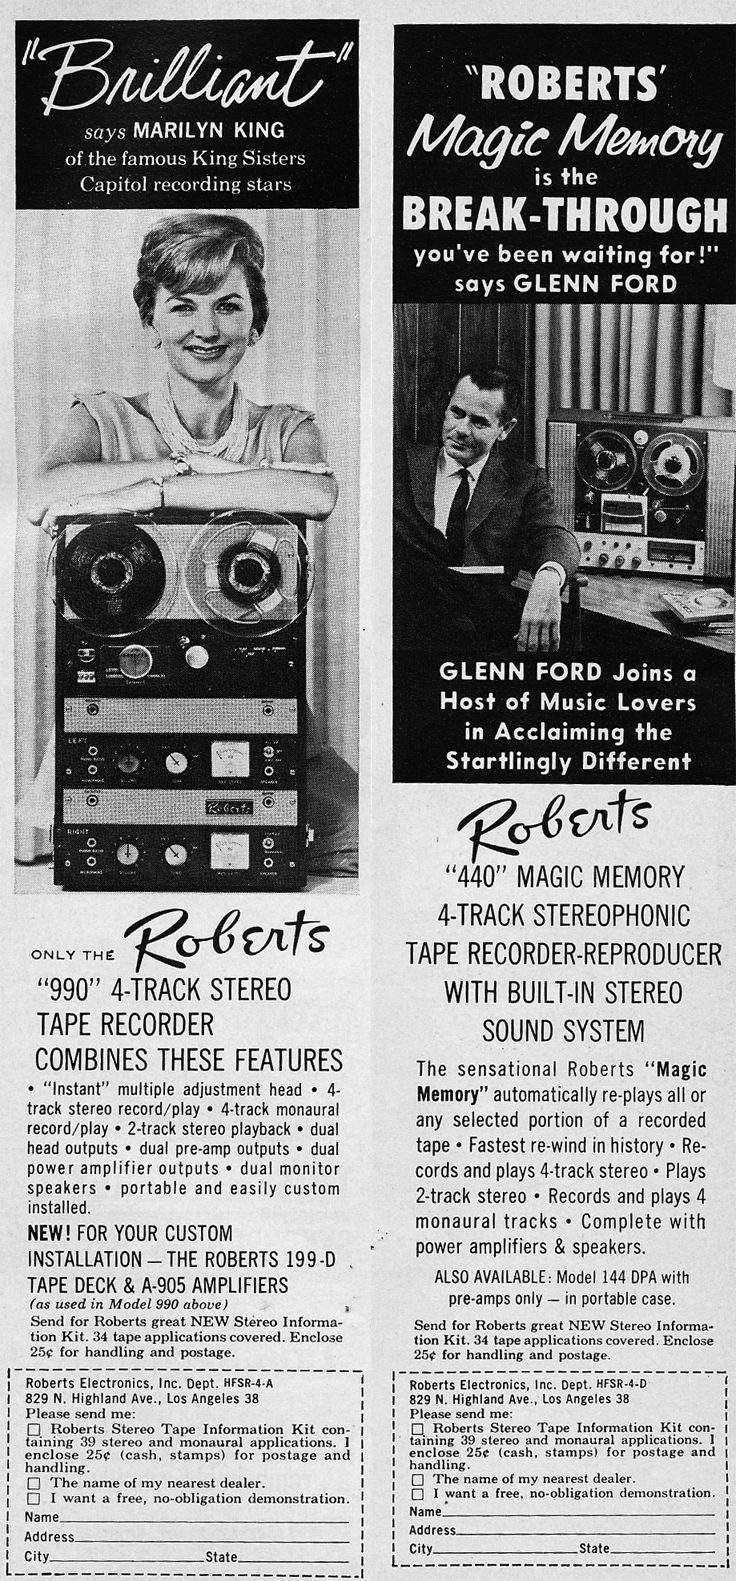 1961 ad for the Roberts 990 reel to reel tape recorder featuring Marilyn King and Glenn Ford in Reel2ReelTexas.com's vintage recording collection